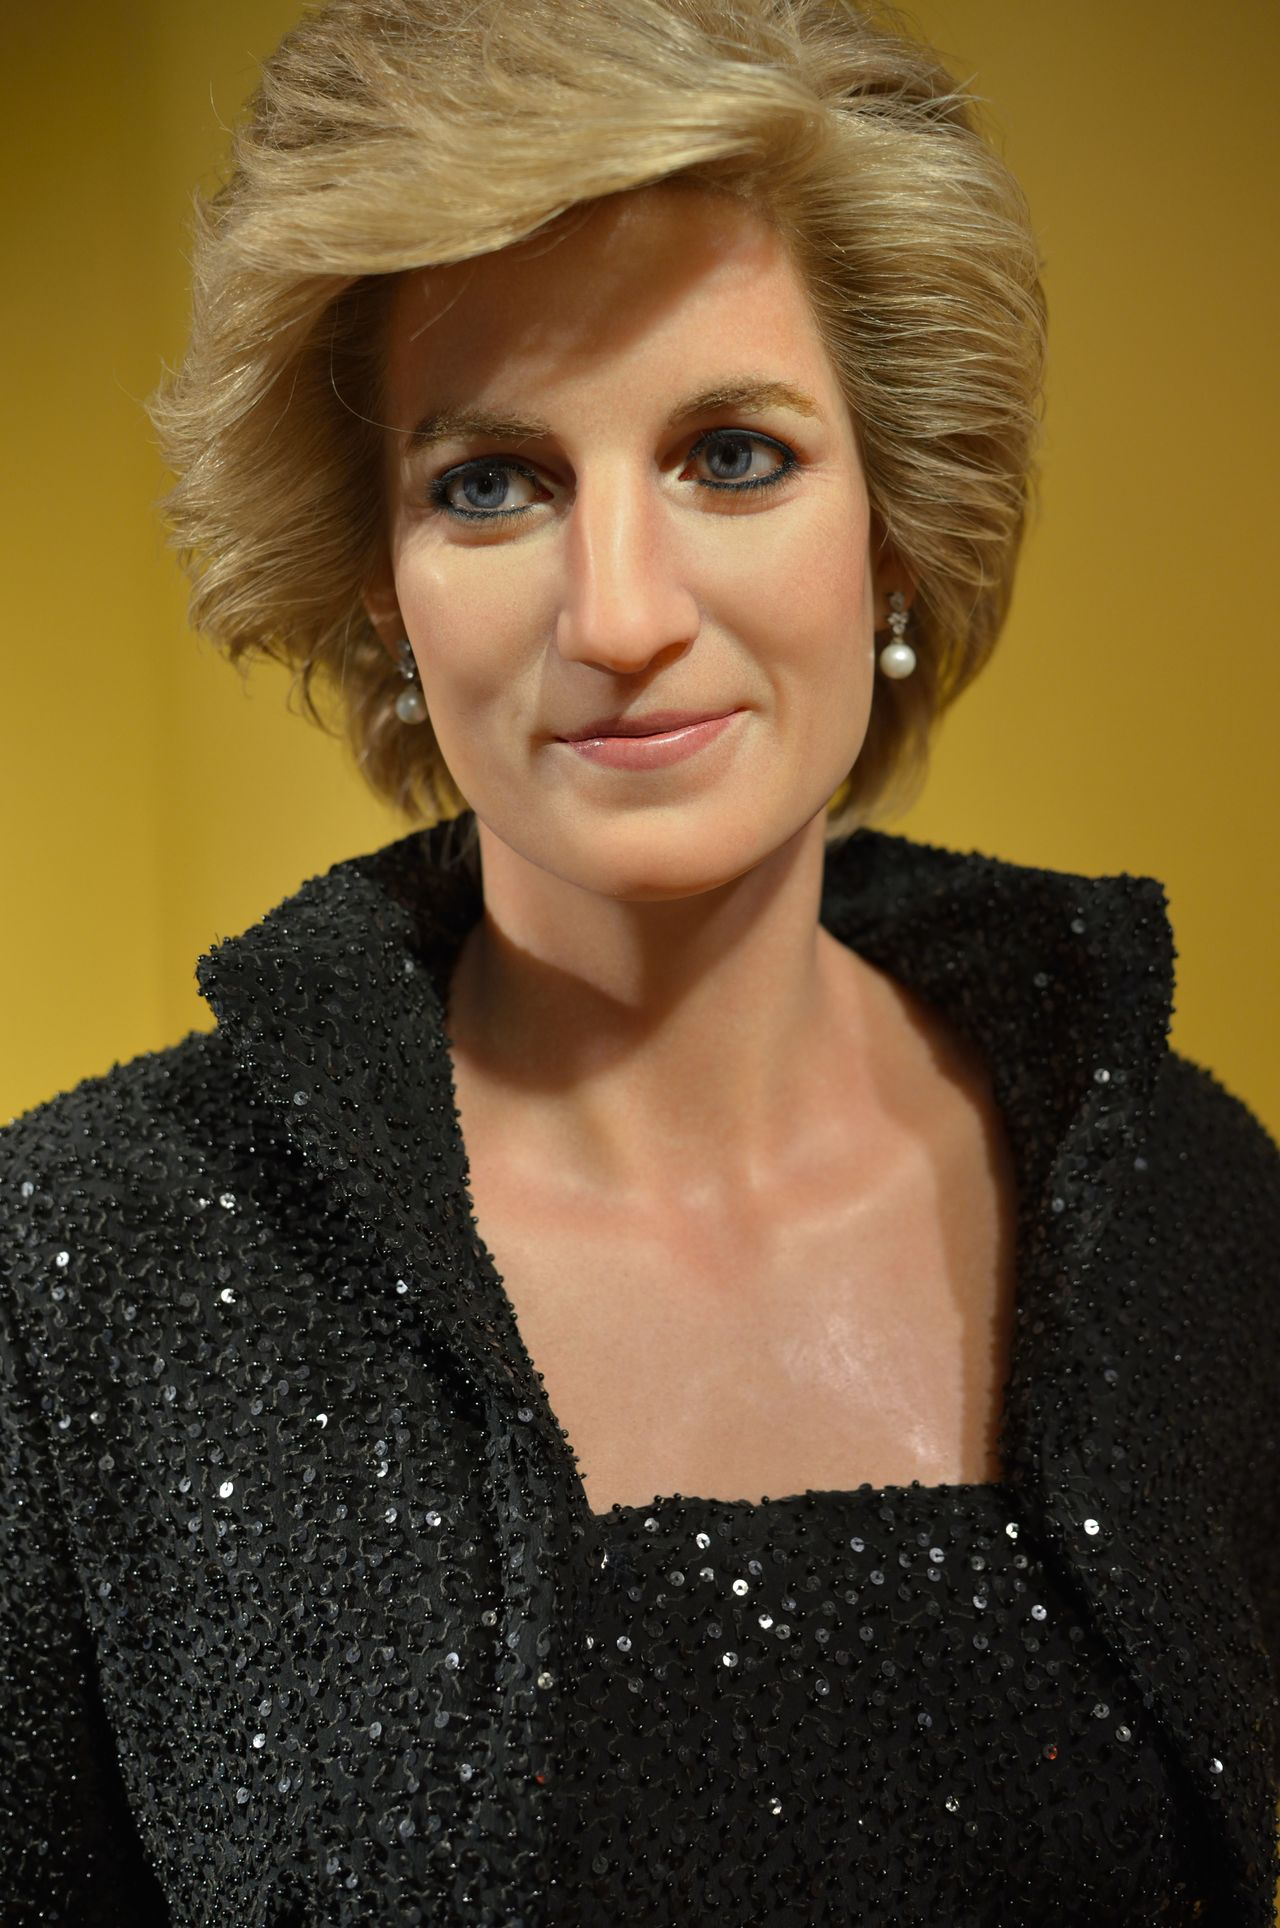 Lady Diana Casual Clothing Composition Confidence  Contemplation Fashion Front View Head And Shoulders Lifestyles Long Hair Looking At Camera Madame Tussauds Person Perspective Portrait Real People Serious Smiling Wax Dolls Wax Museum Young Adult Young Women